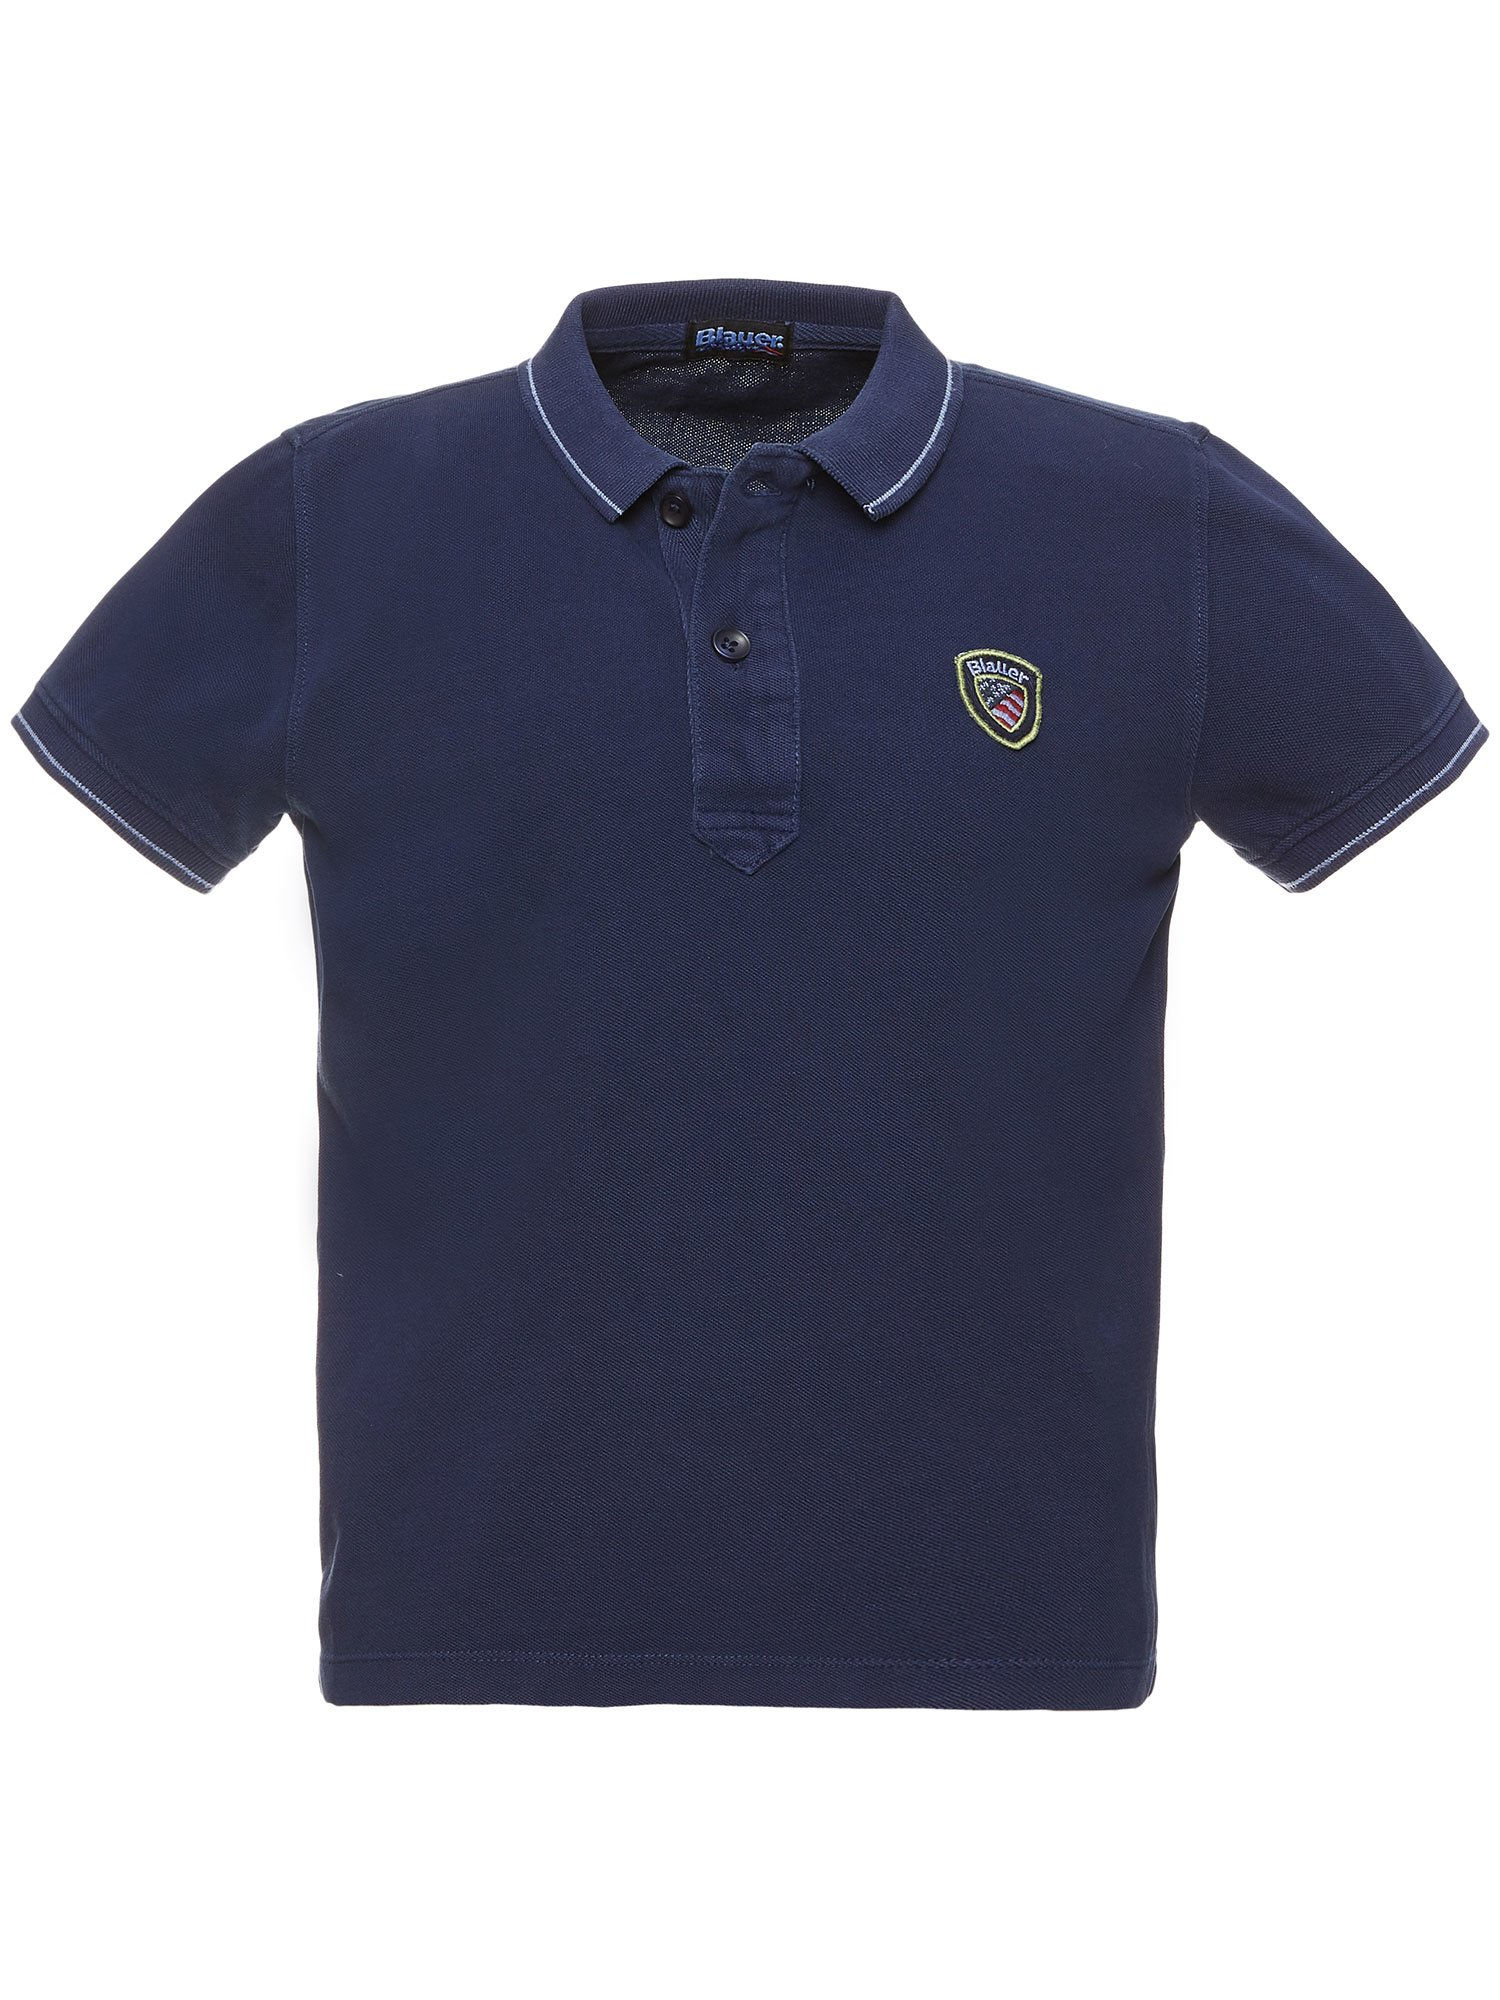 CHILDREN'S PIQUE POLO SHIRT WITH STRIPED RIBBING - Blauer